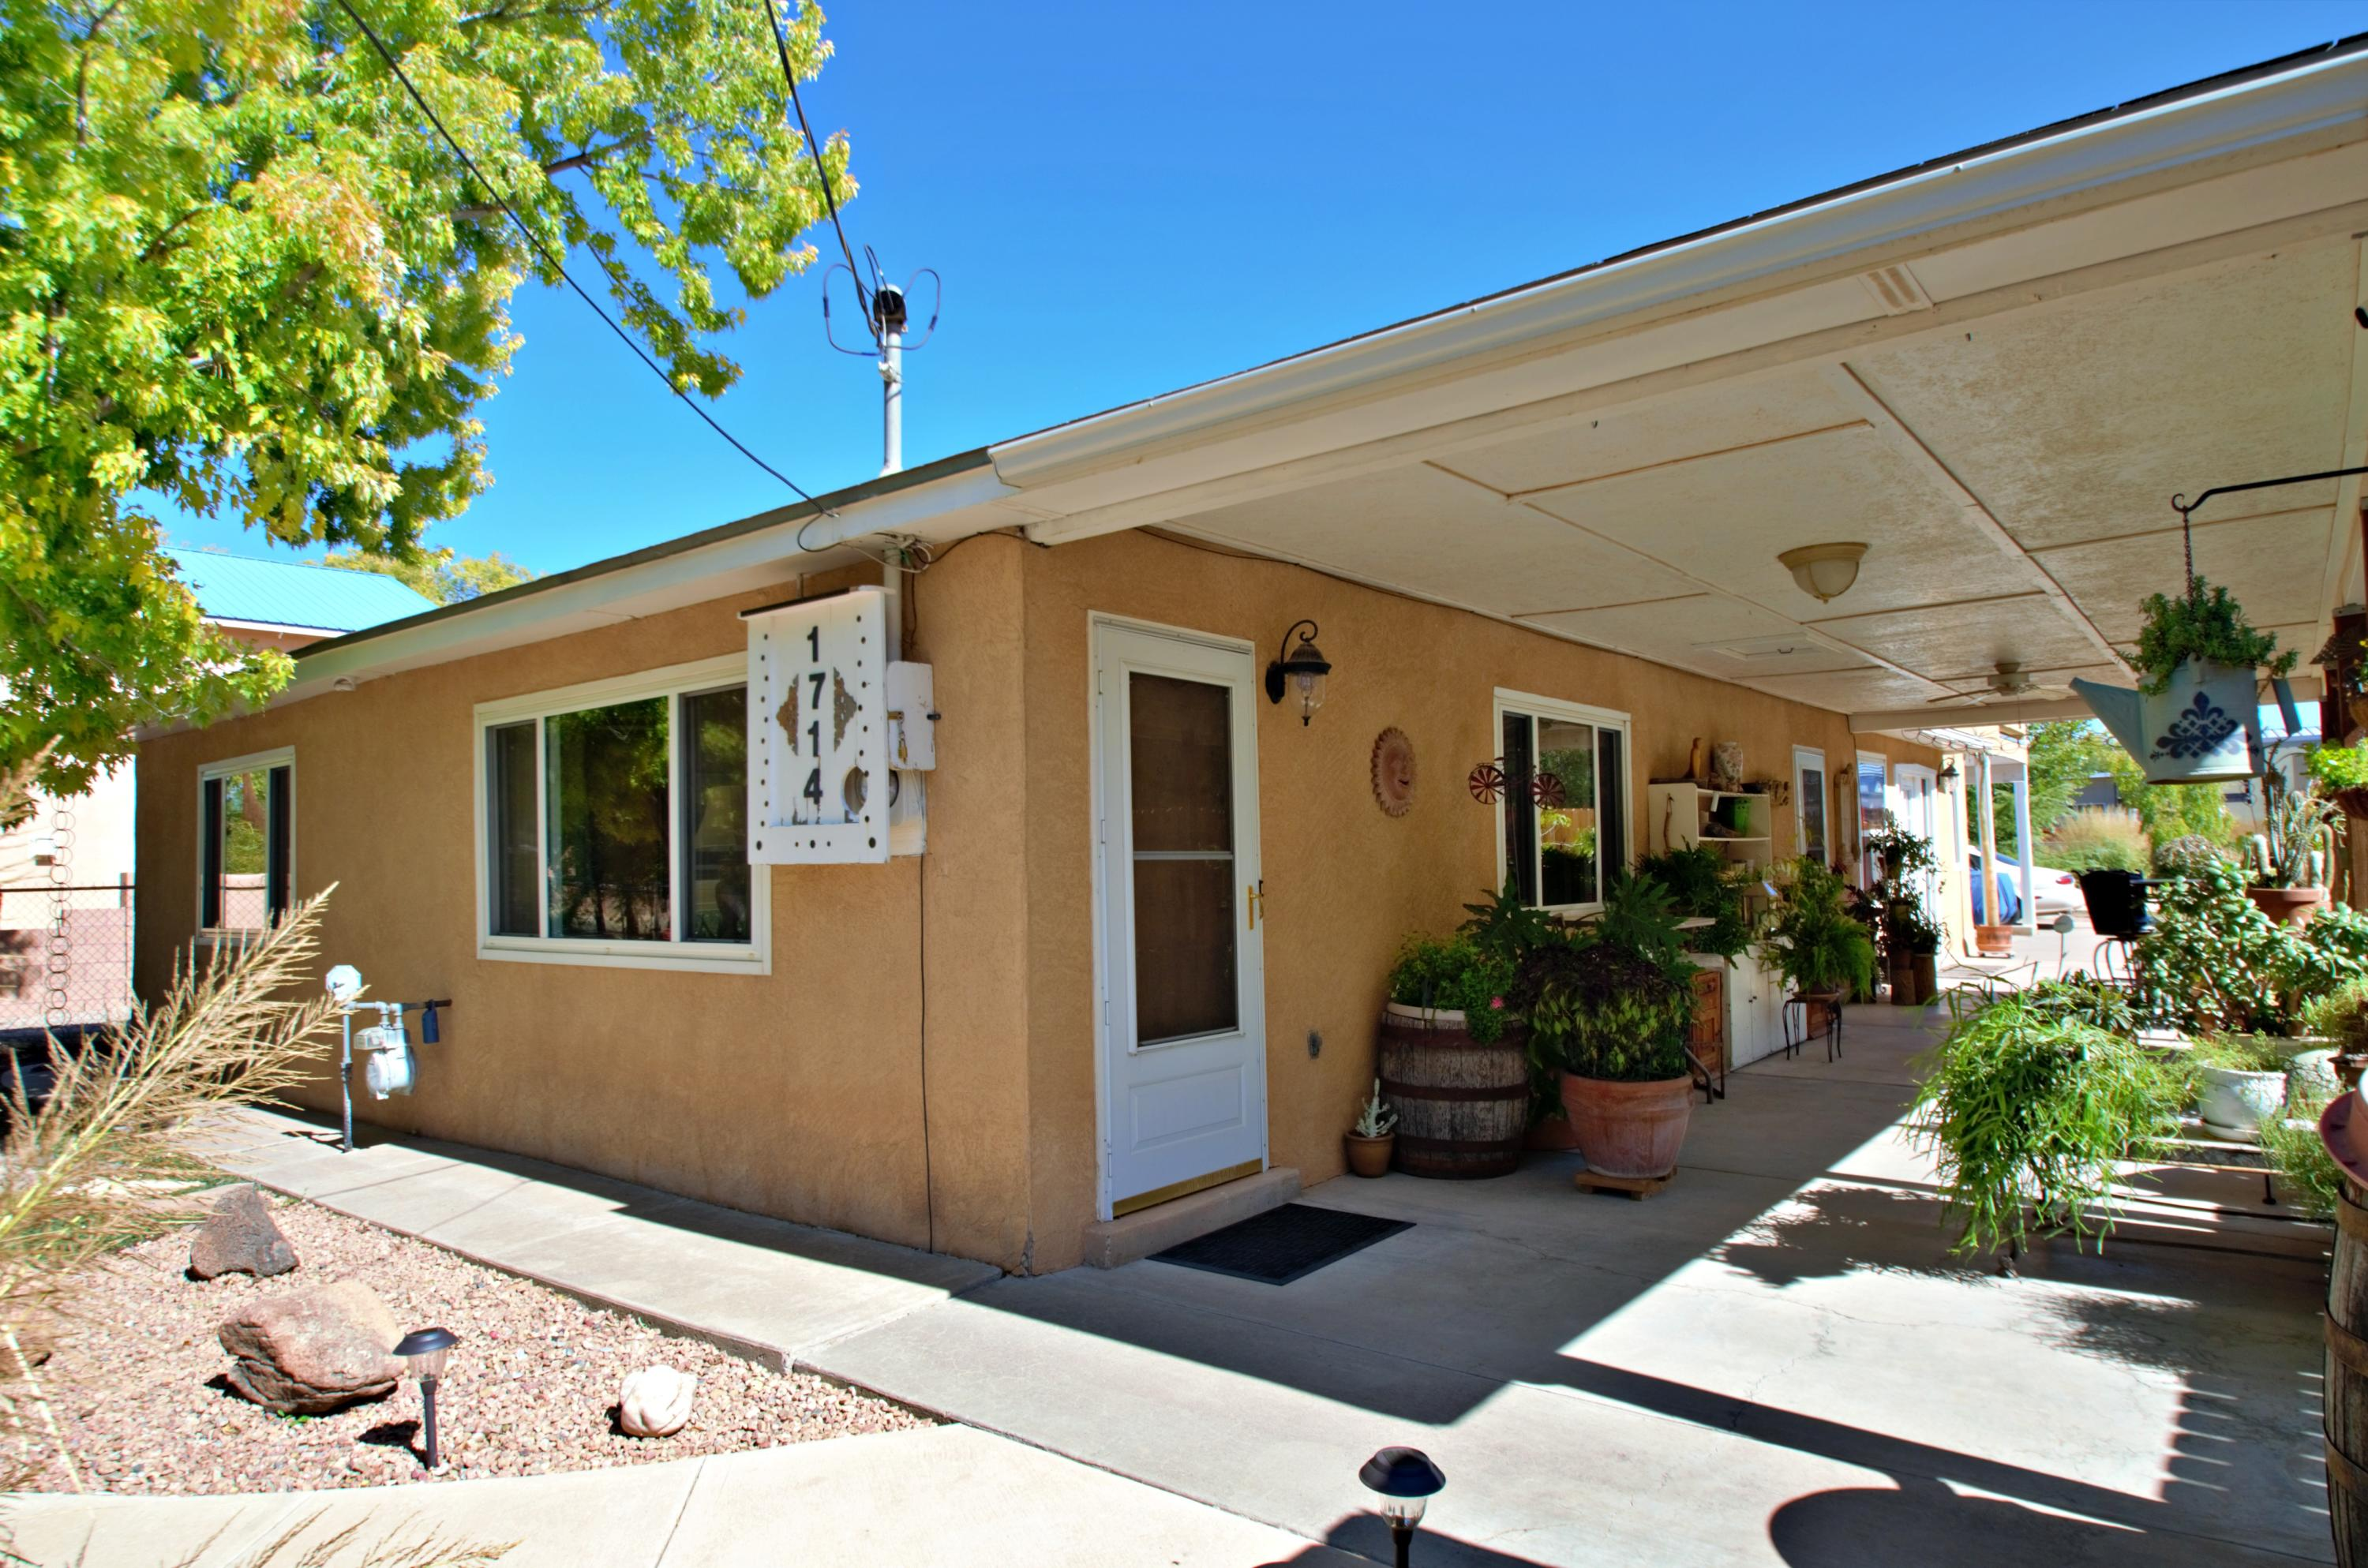 Price Improved! Charming, near North Valley home approx. 2490 sq.ft. living space and a large covered porch with ceiling fan for outdoor fun. Carport and adjacent area large enough for 4 vehicles. House sits on just over a 1/4 acre, with multiple mature trees and lots of room. Situated on a quiet street near a park and community center and within walking distance to the Bosque. Close to Old Town and Nature Center, easy access to I-40, and still quiet enough to feel remote. New cedar wood fencing on south side of property installed. All major kitchen appliances stay including a newer refrigerator, microwave and a new dishwasher. 2 large living areas, 4 nice sized bedrooms with two walk-in closets and a small balcony off the master. All bathrooms remodeled. Lots of storage! Come see this one